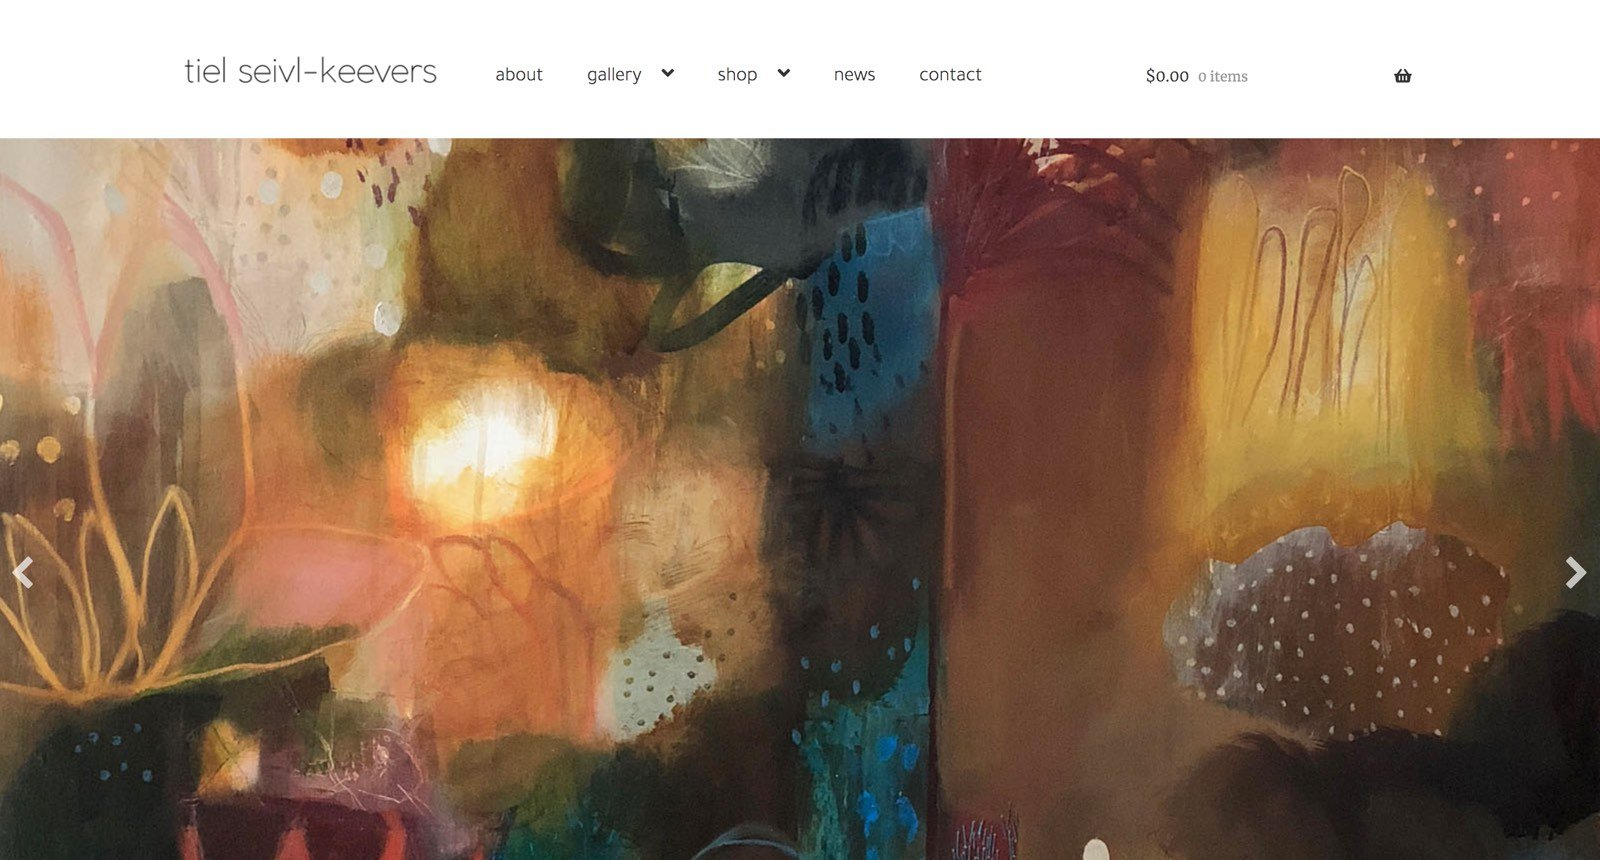 New WooCommerce website launch – Tiel Seivl-Keevers